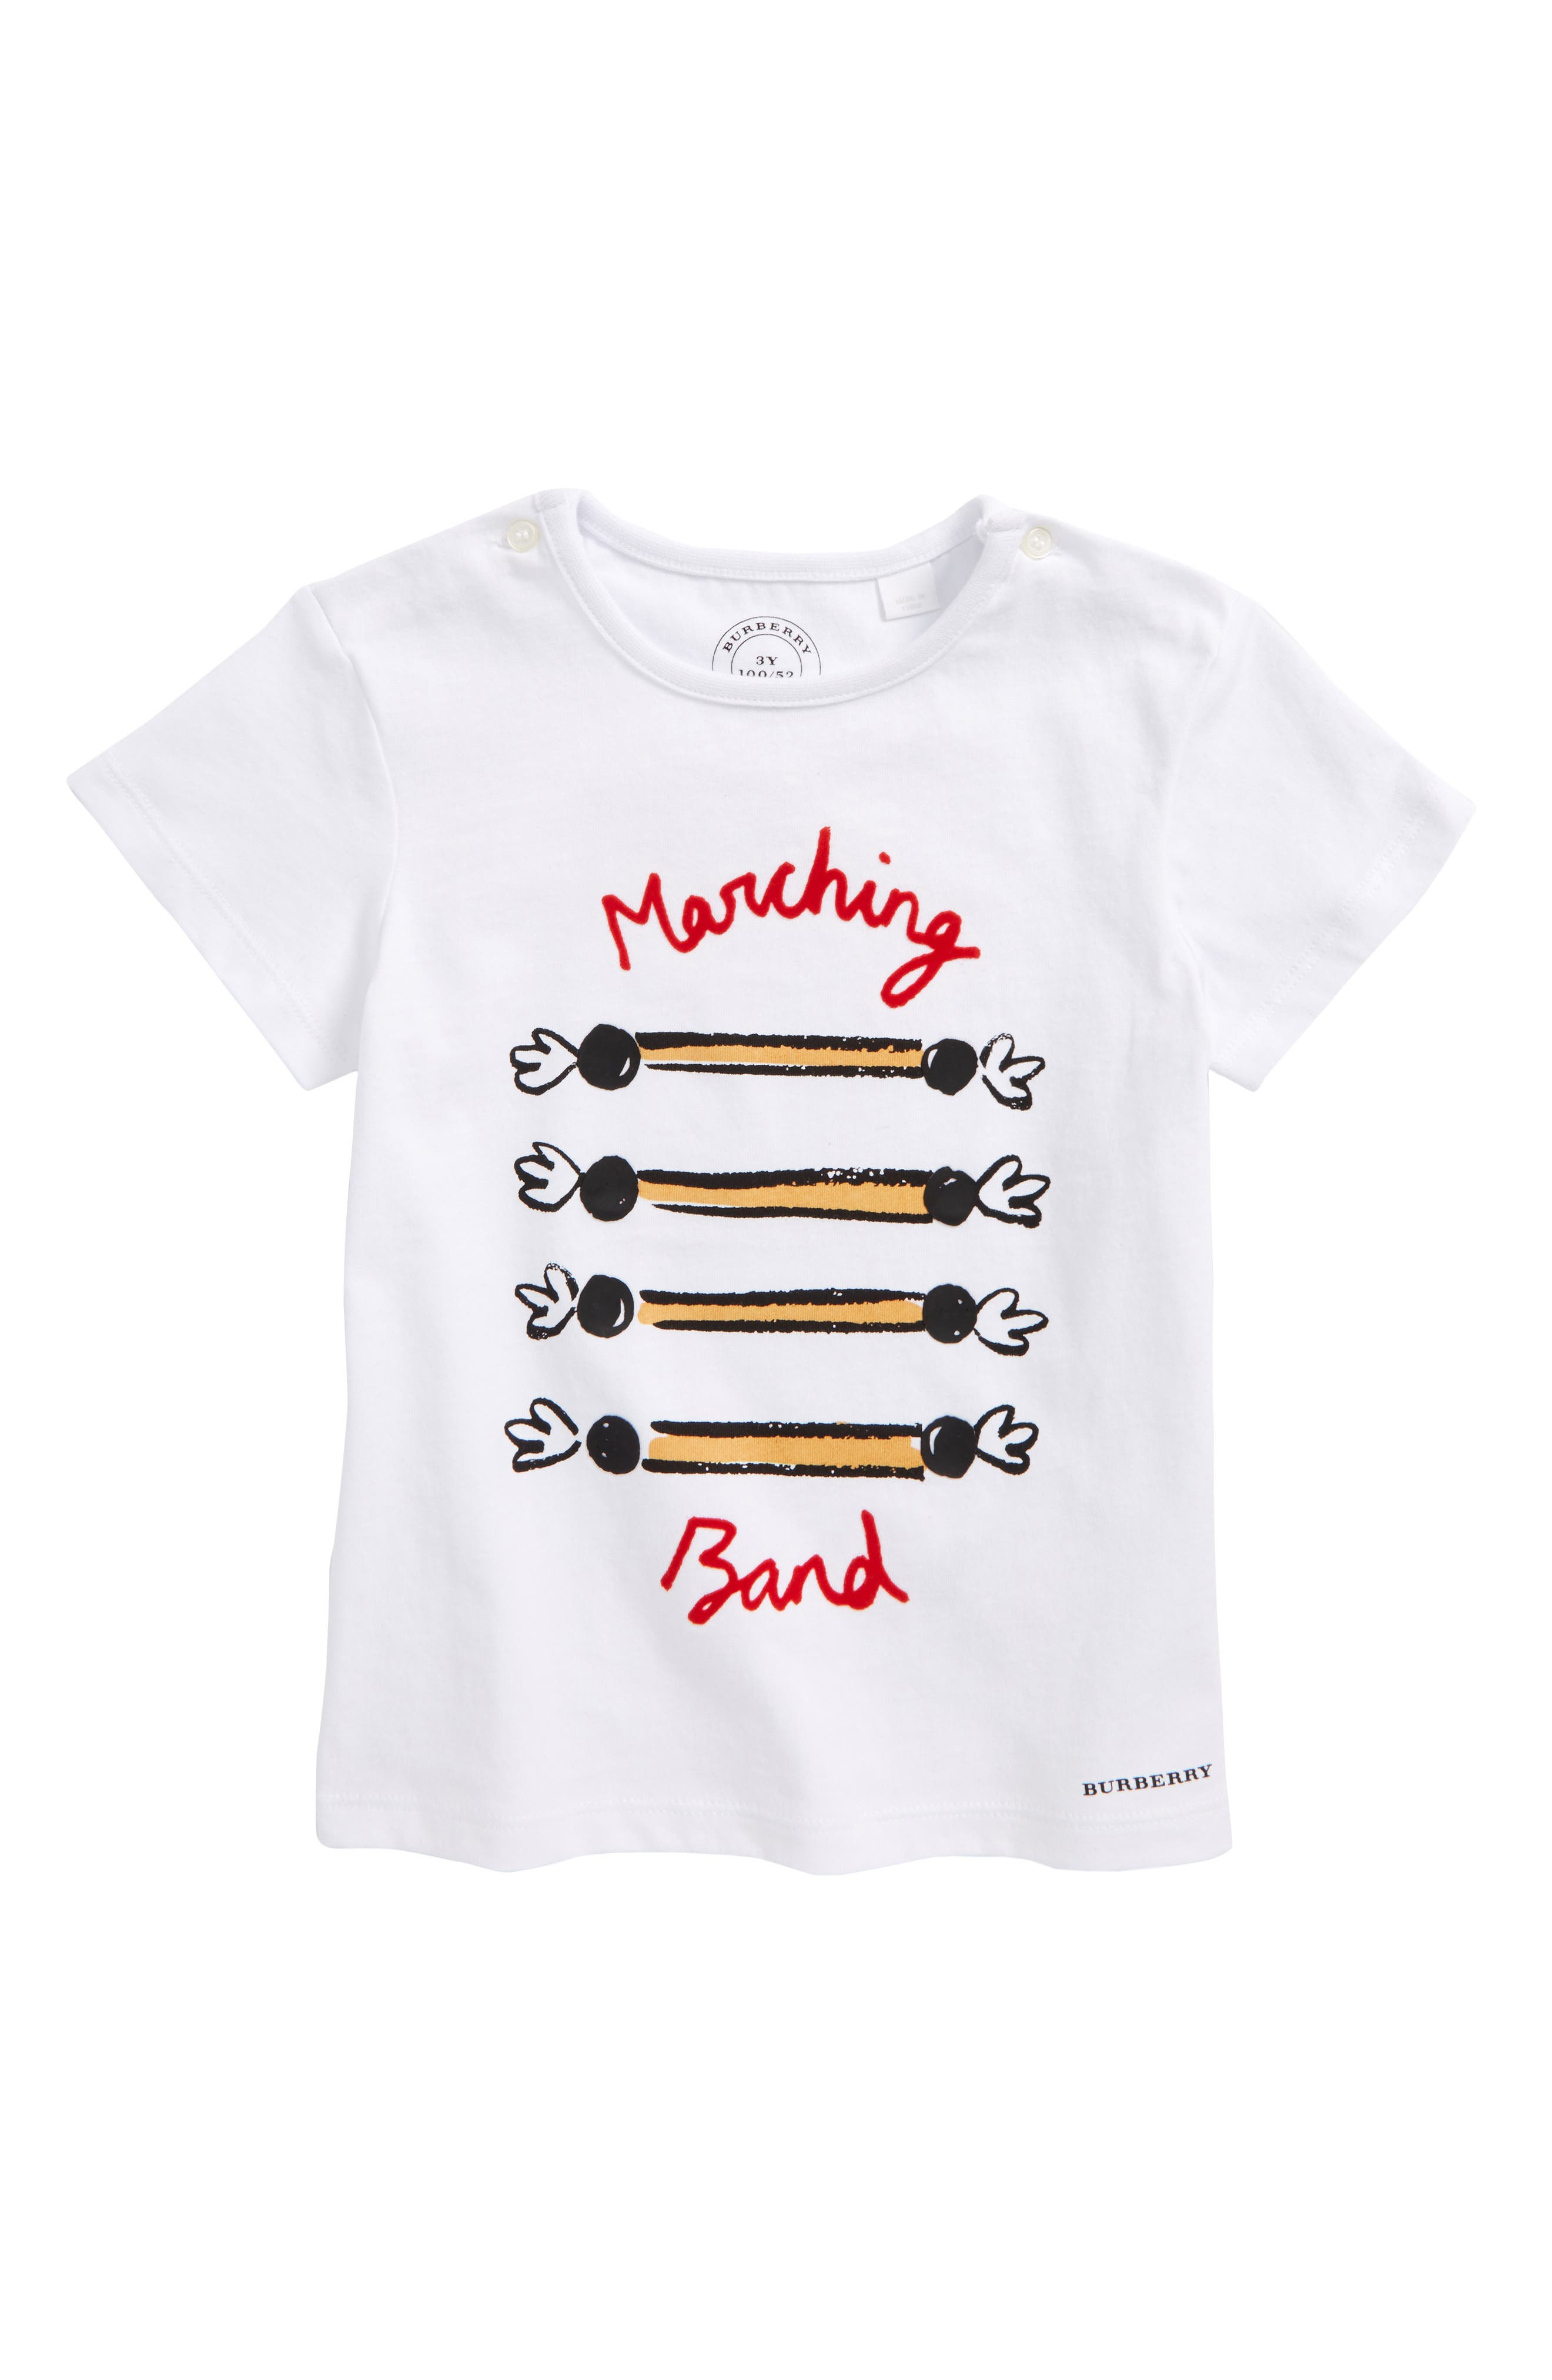 Alternate Image 1 Selected - Burberry Marching Band Tee (Toddler)